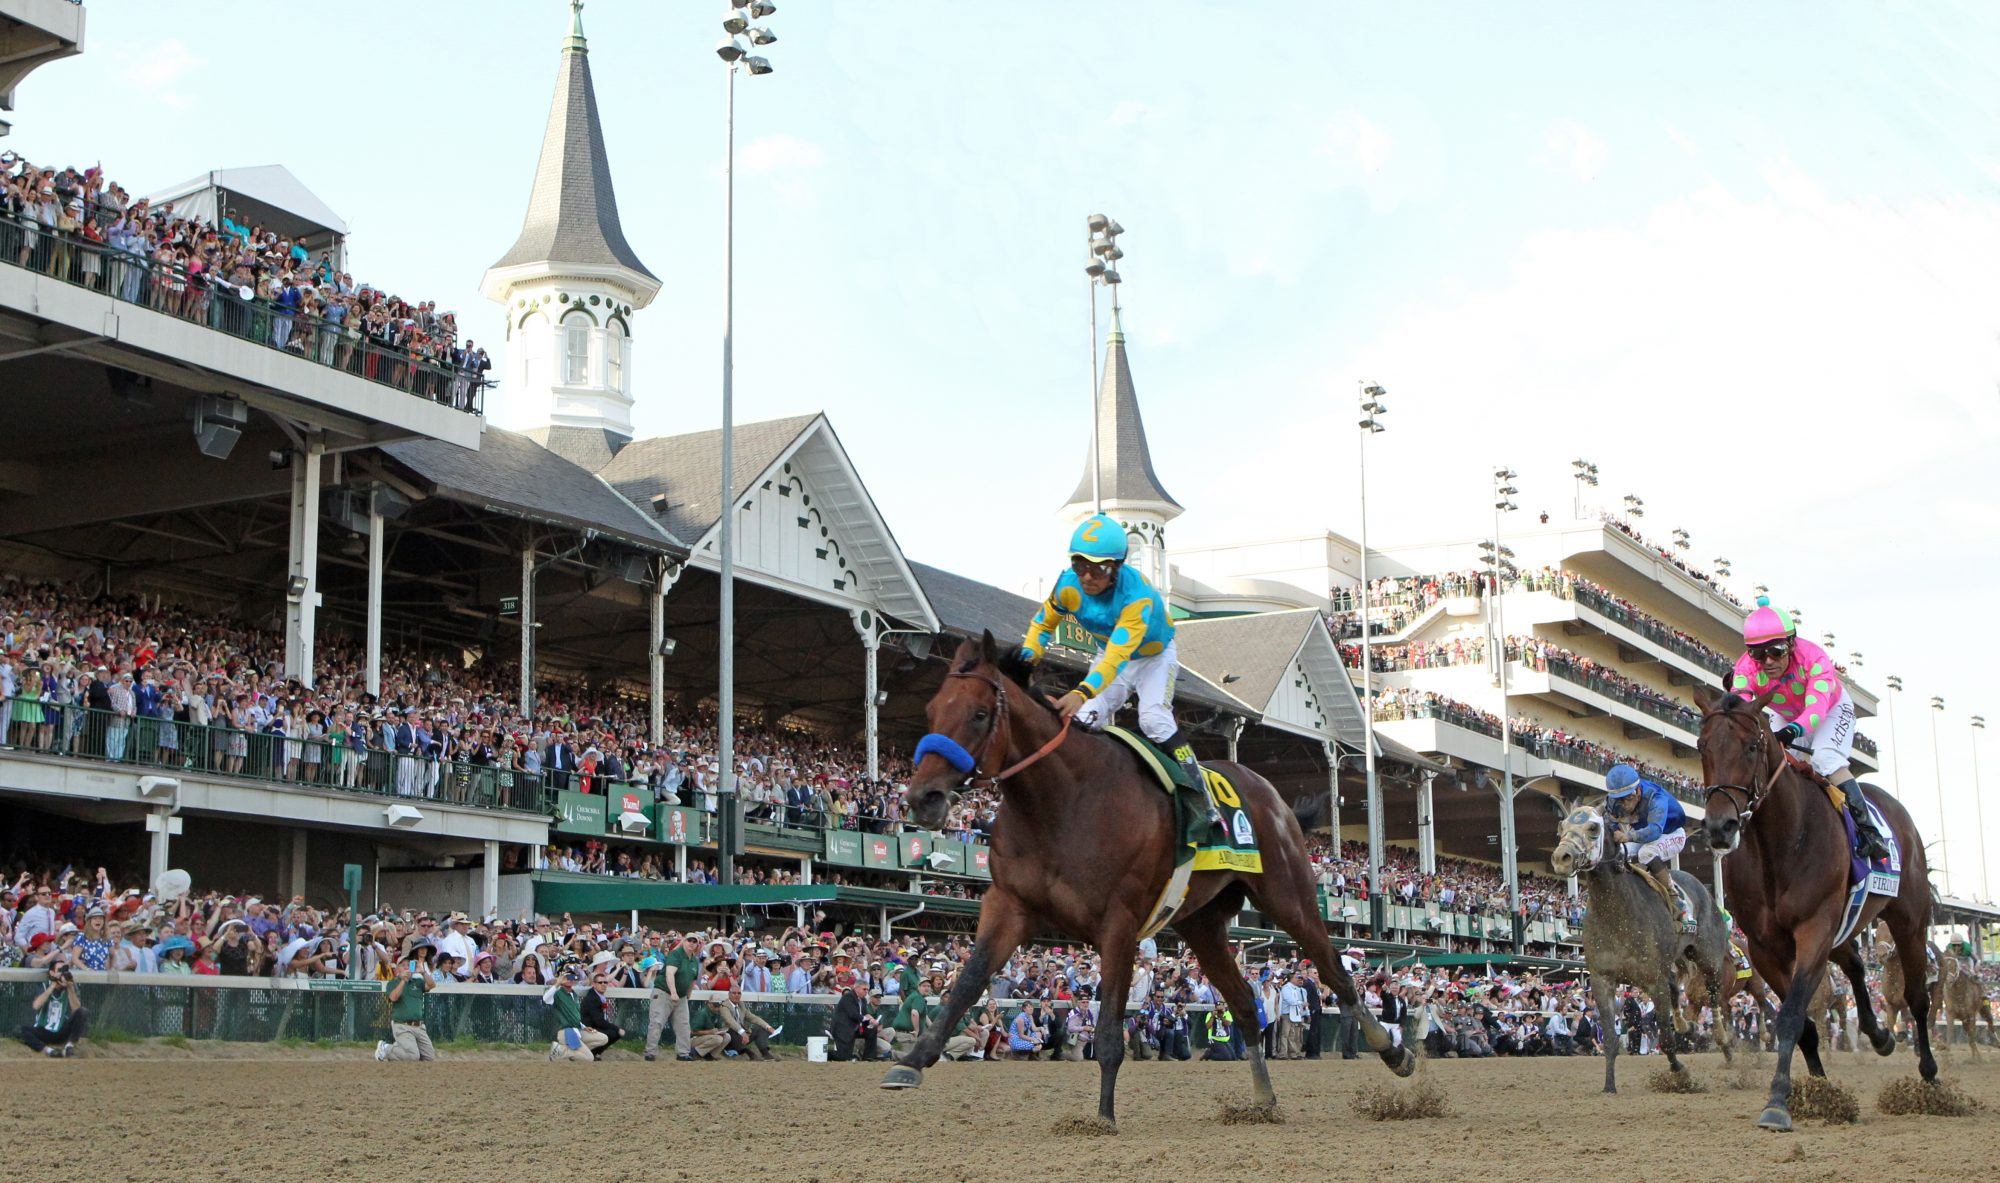 Kentucky Derby winner American Pharoah